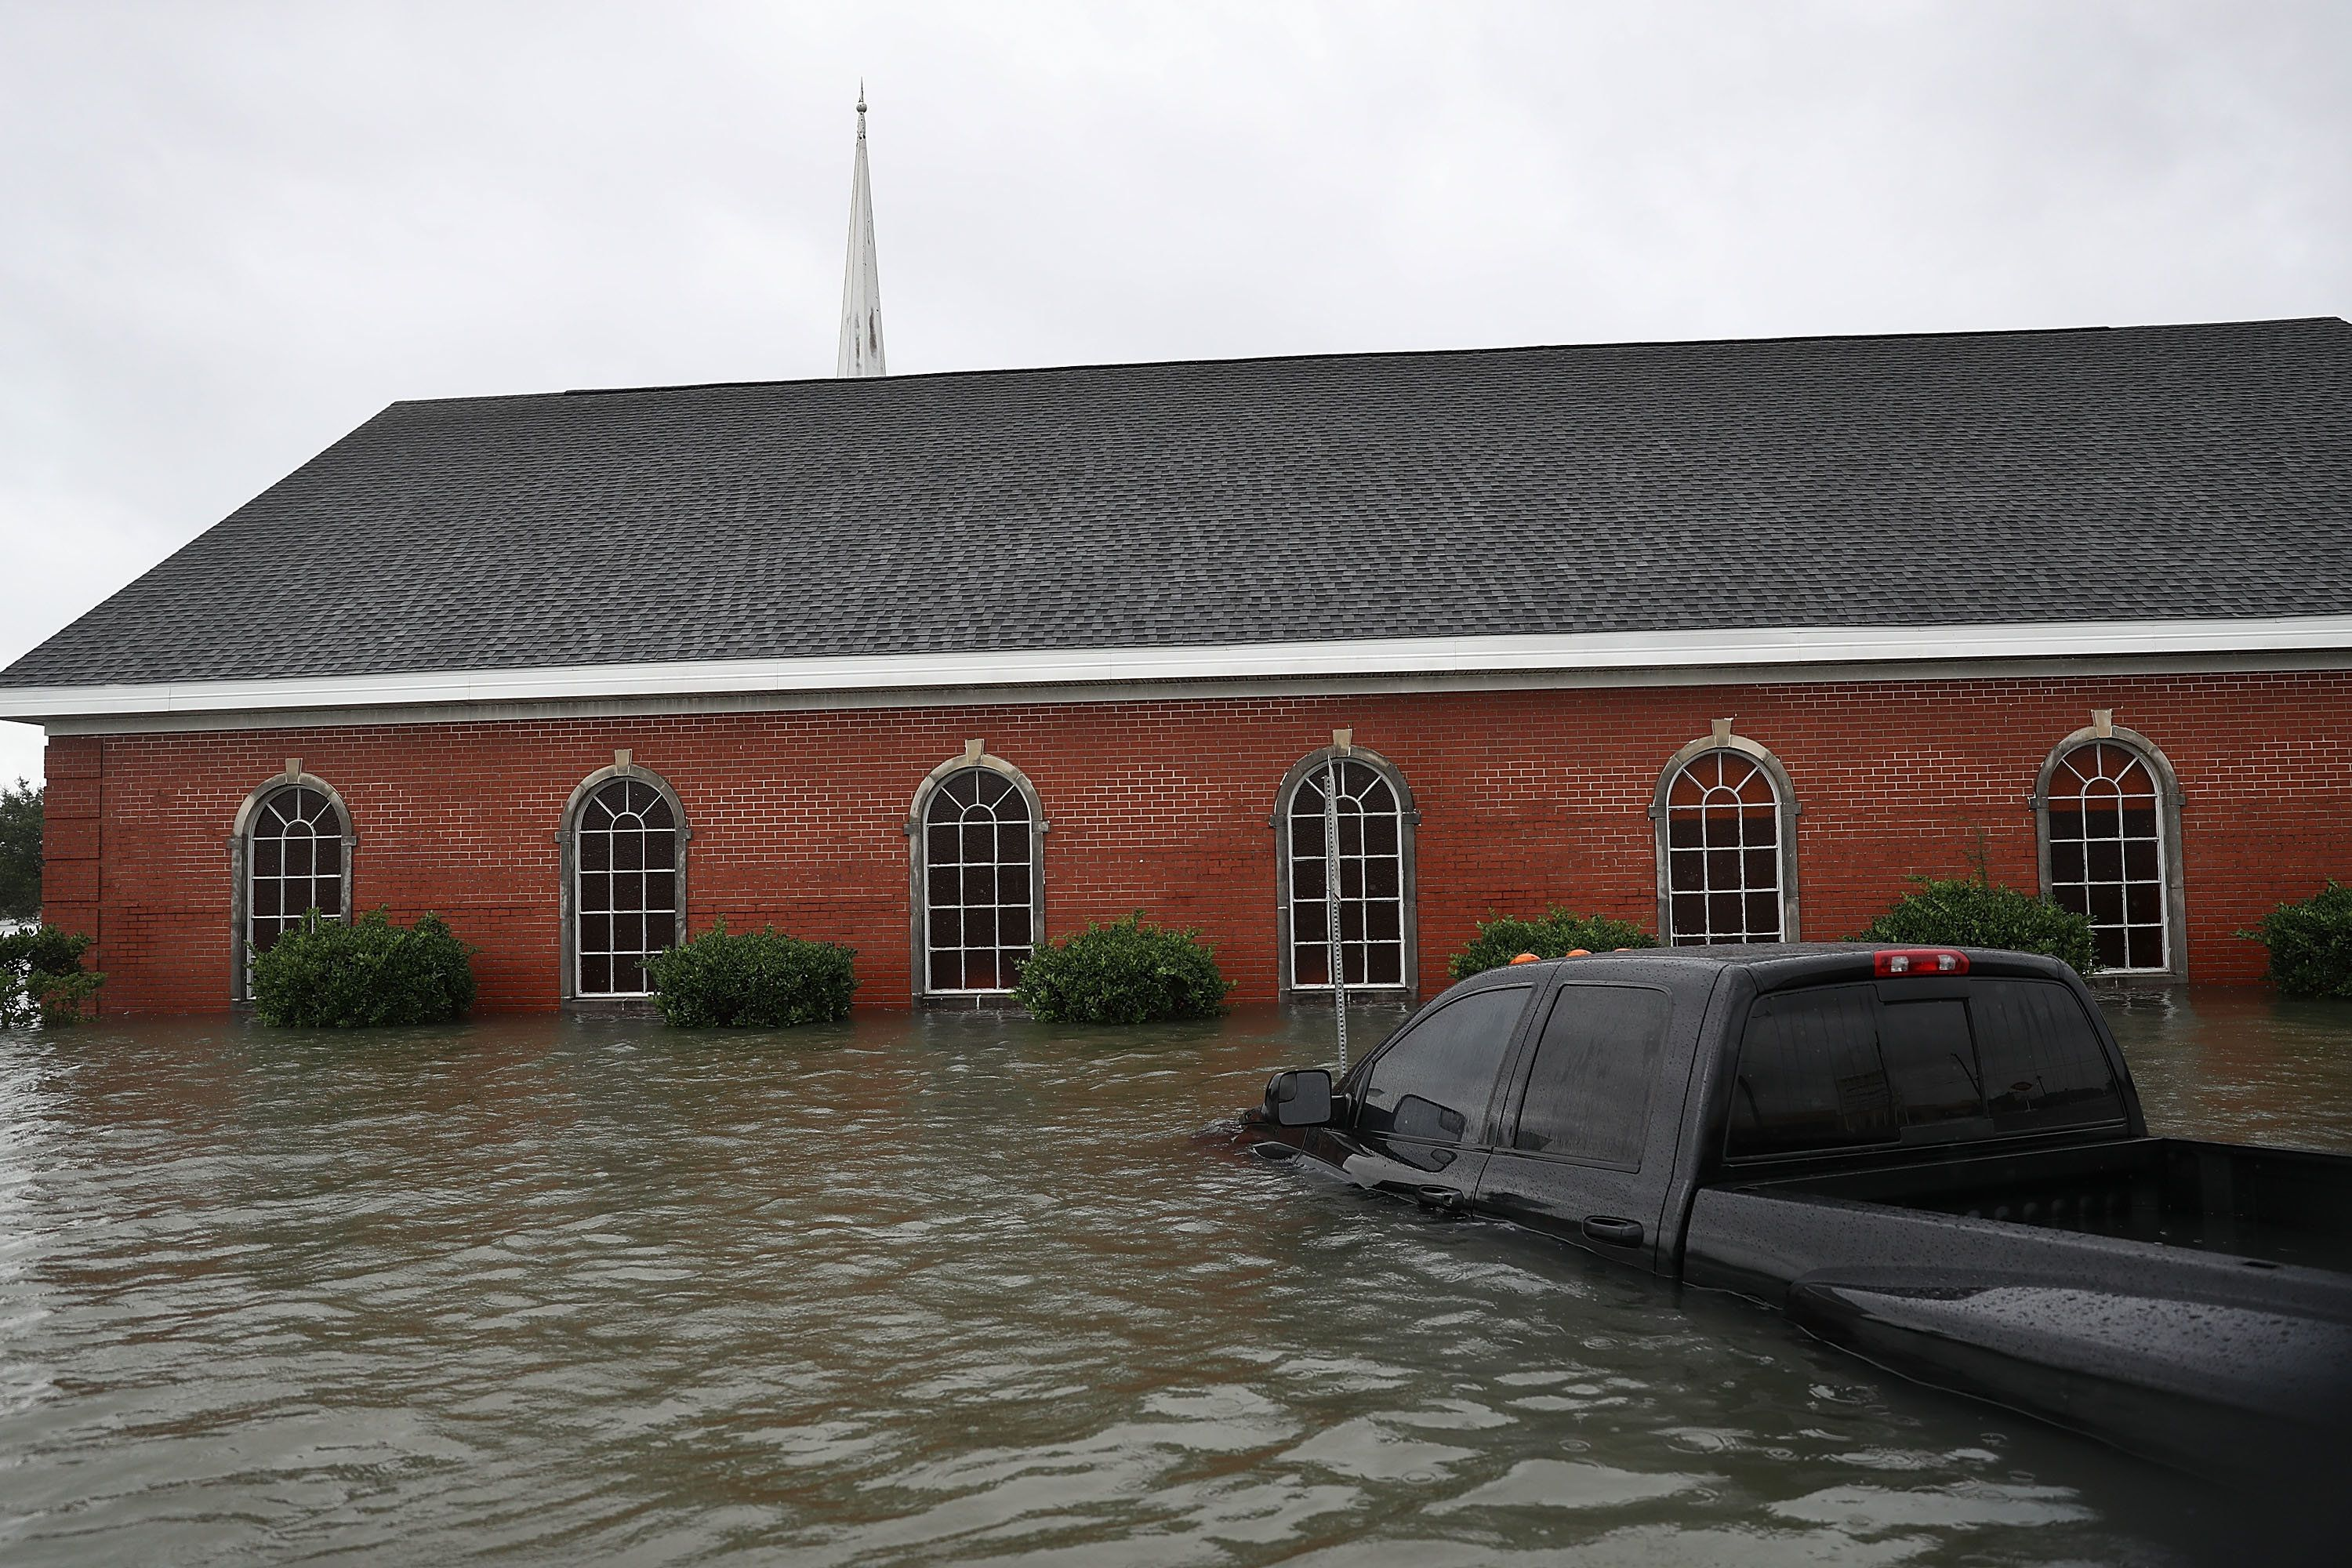 A Port Arthur, Texas, church is surrounded by water after Hurricane Harvey flooding inundated the area on Aug. 30, 2017.